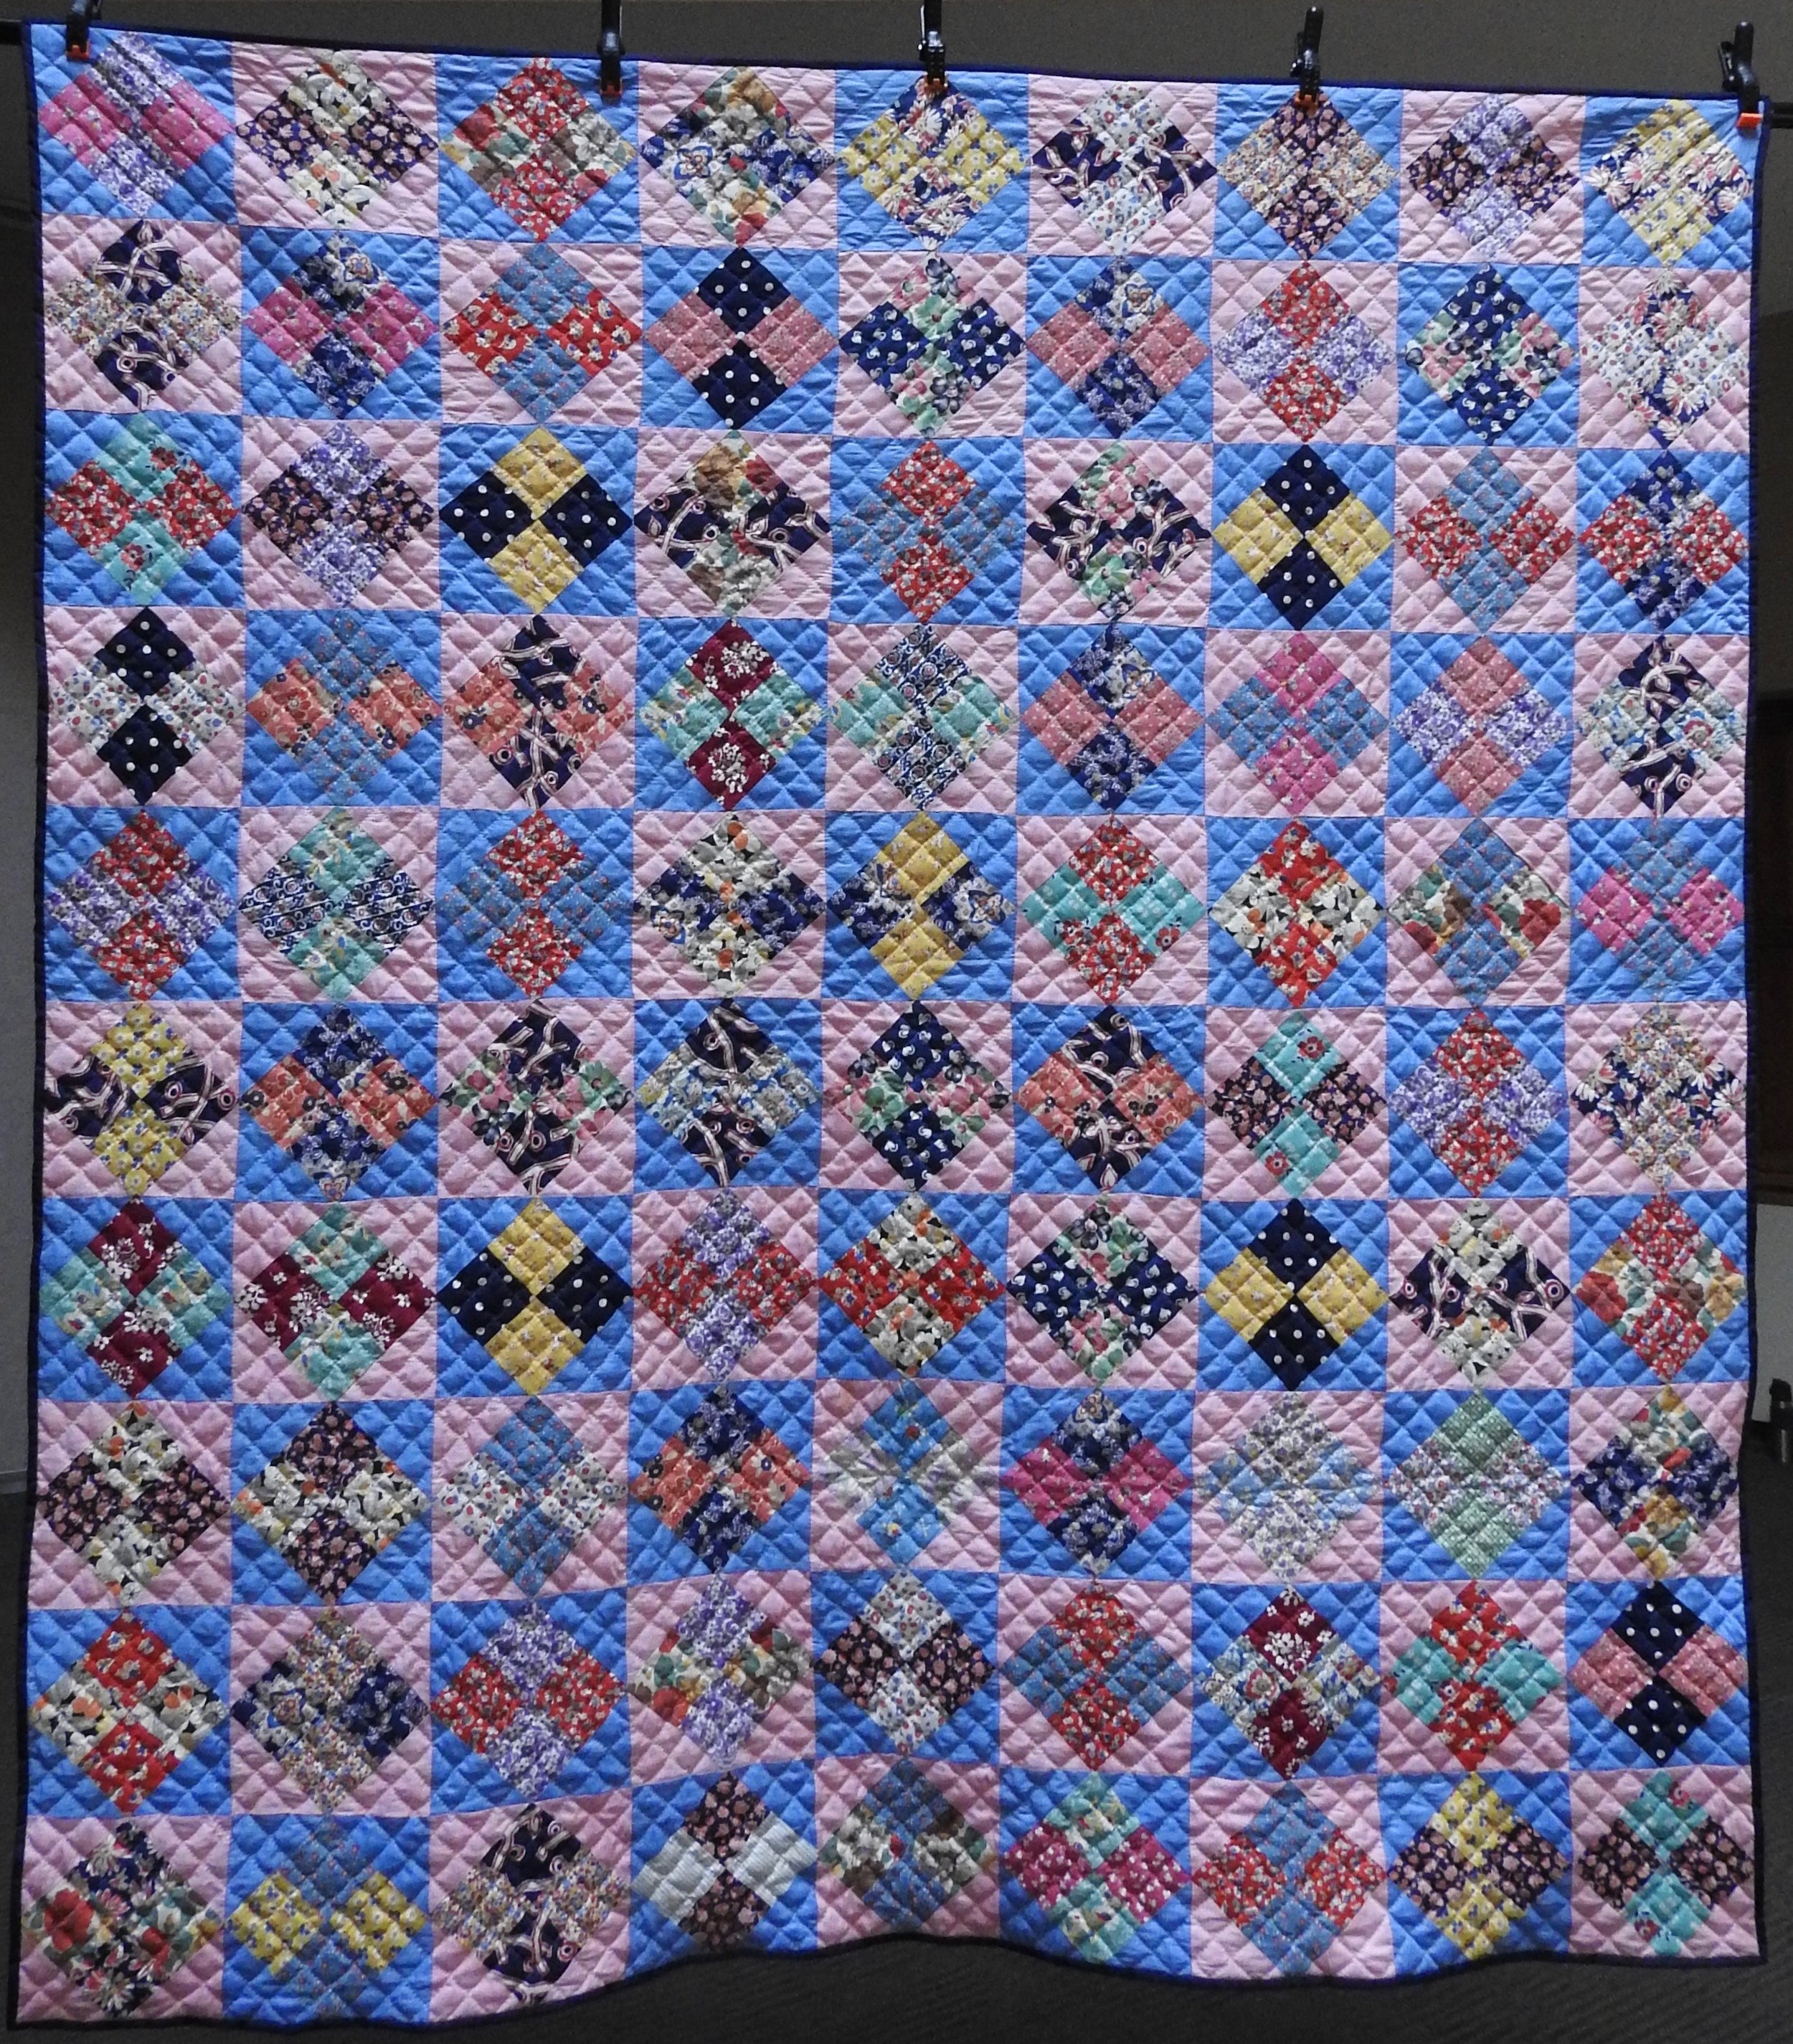 Vintage Four Patch on Point, Pieced of Vintage Fabrics, Hand Quilted by Evergreen Place Quilters, donated Anonymously, 68 x 88""